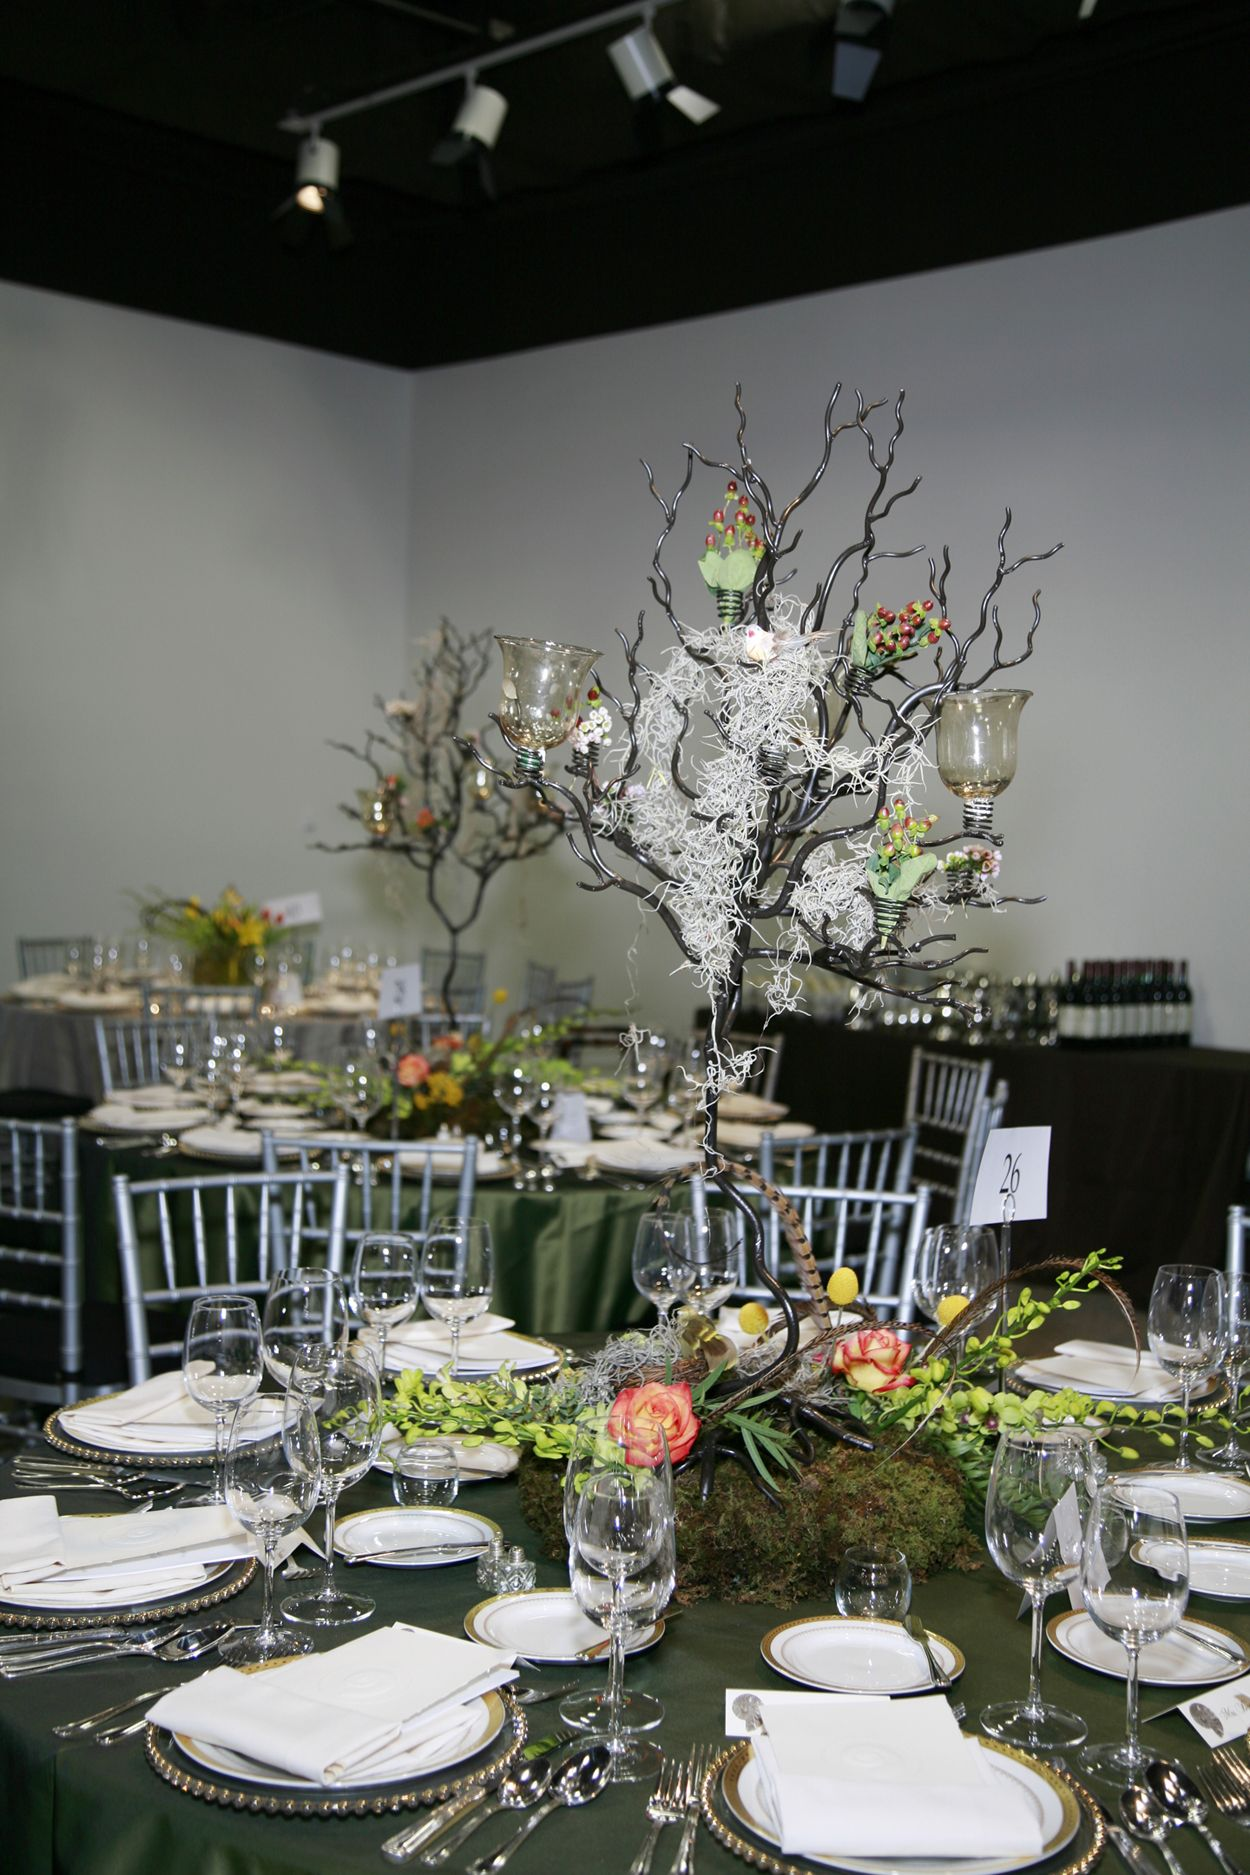 Event Place Setting At The Virginia Museum Of Natural History In